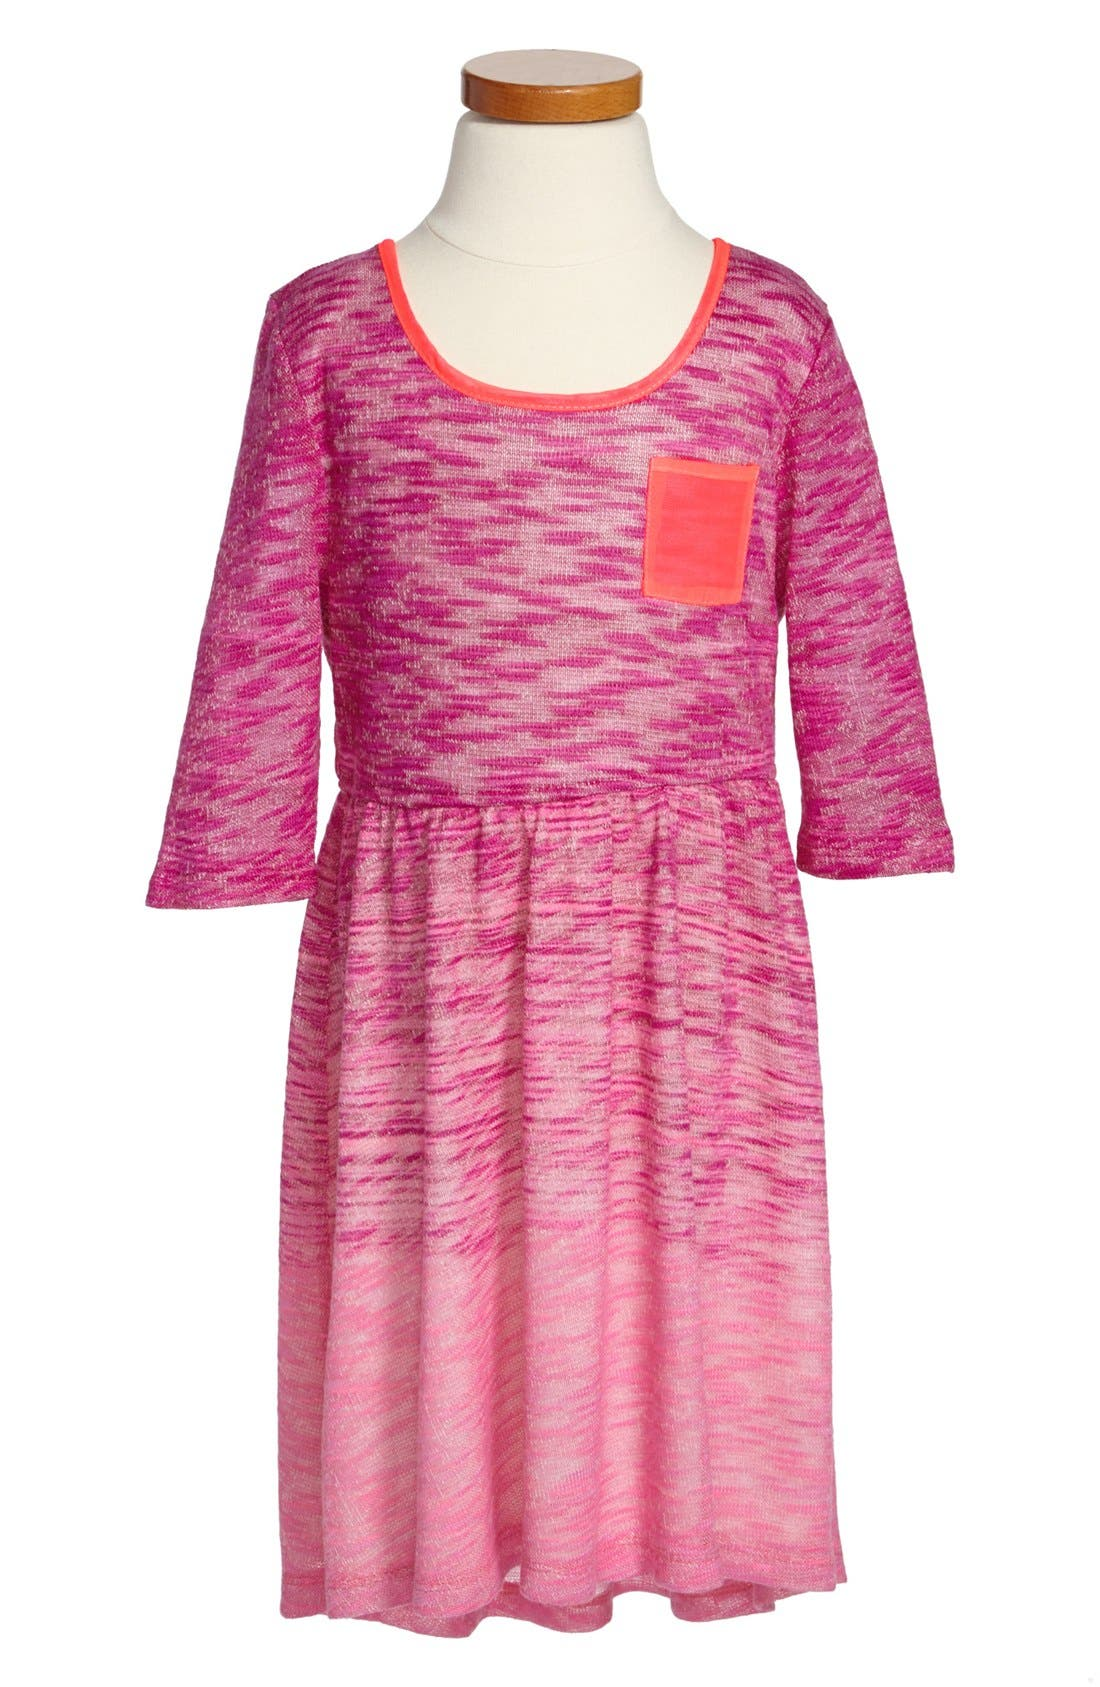 Alternate Image 1 Selected - W Girl Patch Pocket Ombré Dress (Little Girls & Big Girls)